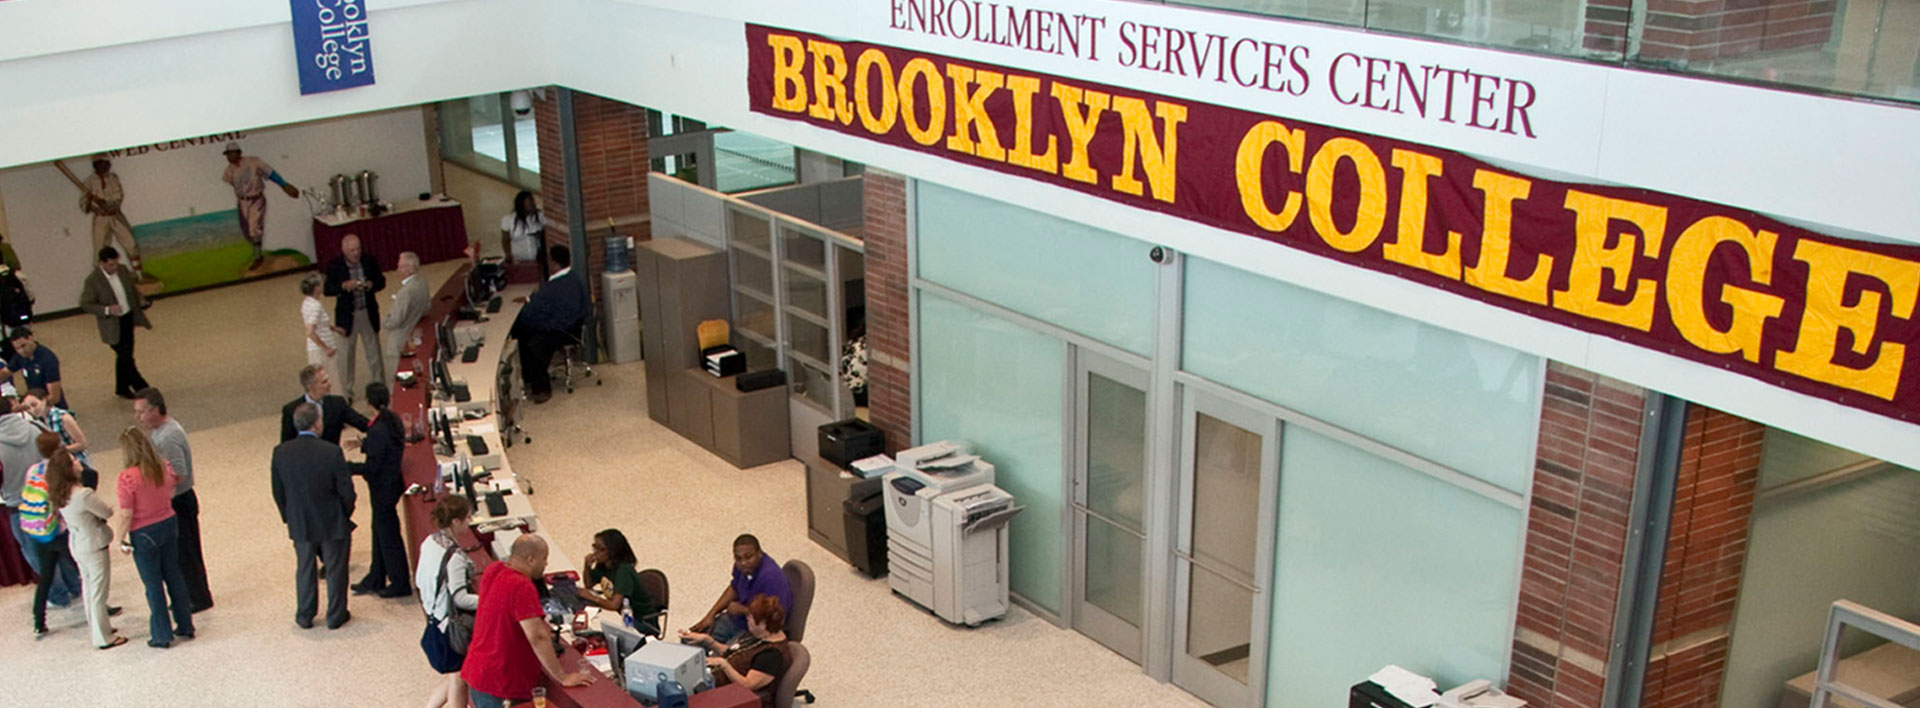 Enrollment Services Center at Brooklyn College